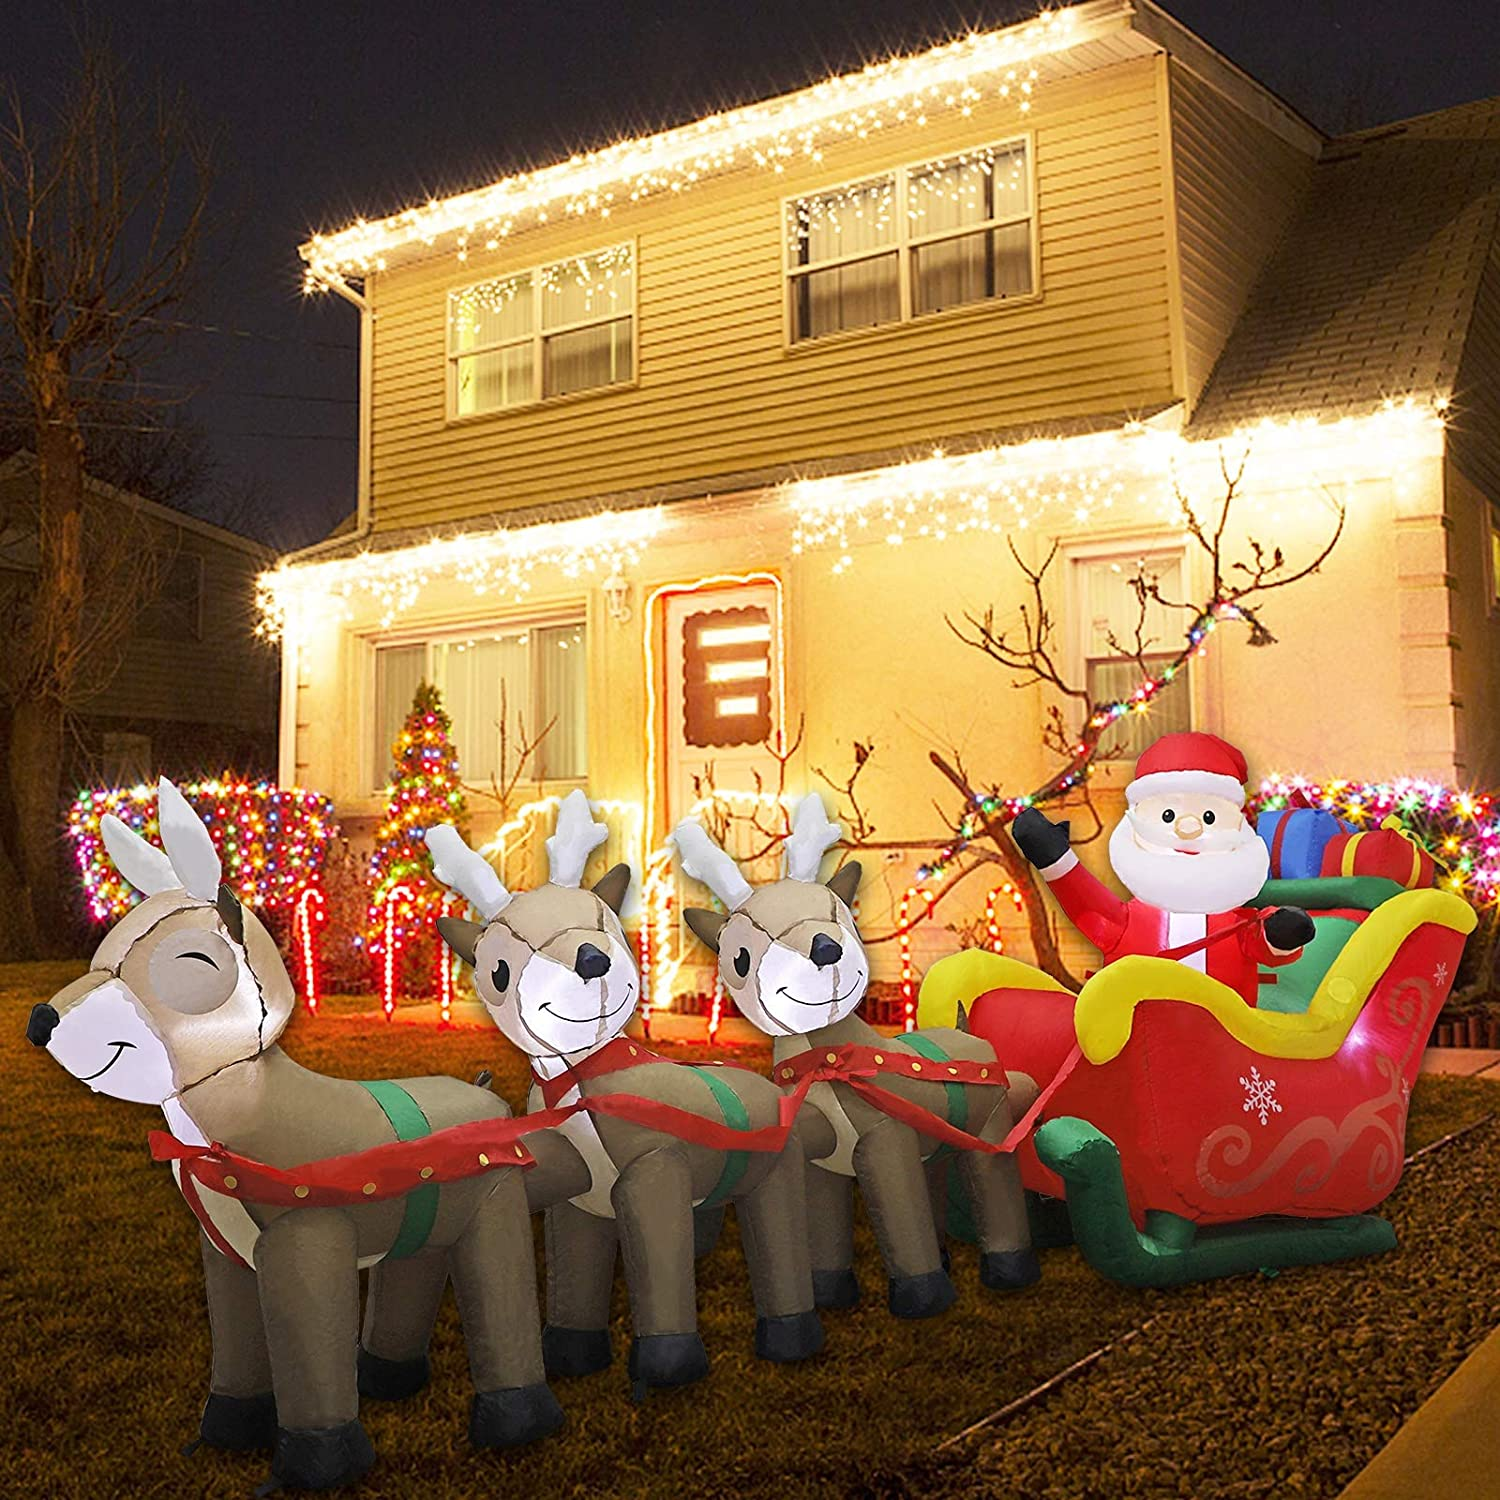 MorTime 9.5 FT Christmas Inflatable Santa Claus on Sleigh Pulled by Three Reindeers with Gift Boxes, Blow up Airblown Lighted Xmas Yard Decor with LED Lights for Christmas Outdoor Decorations